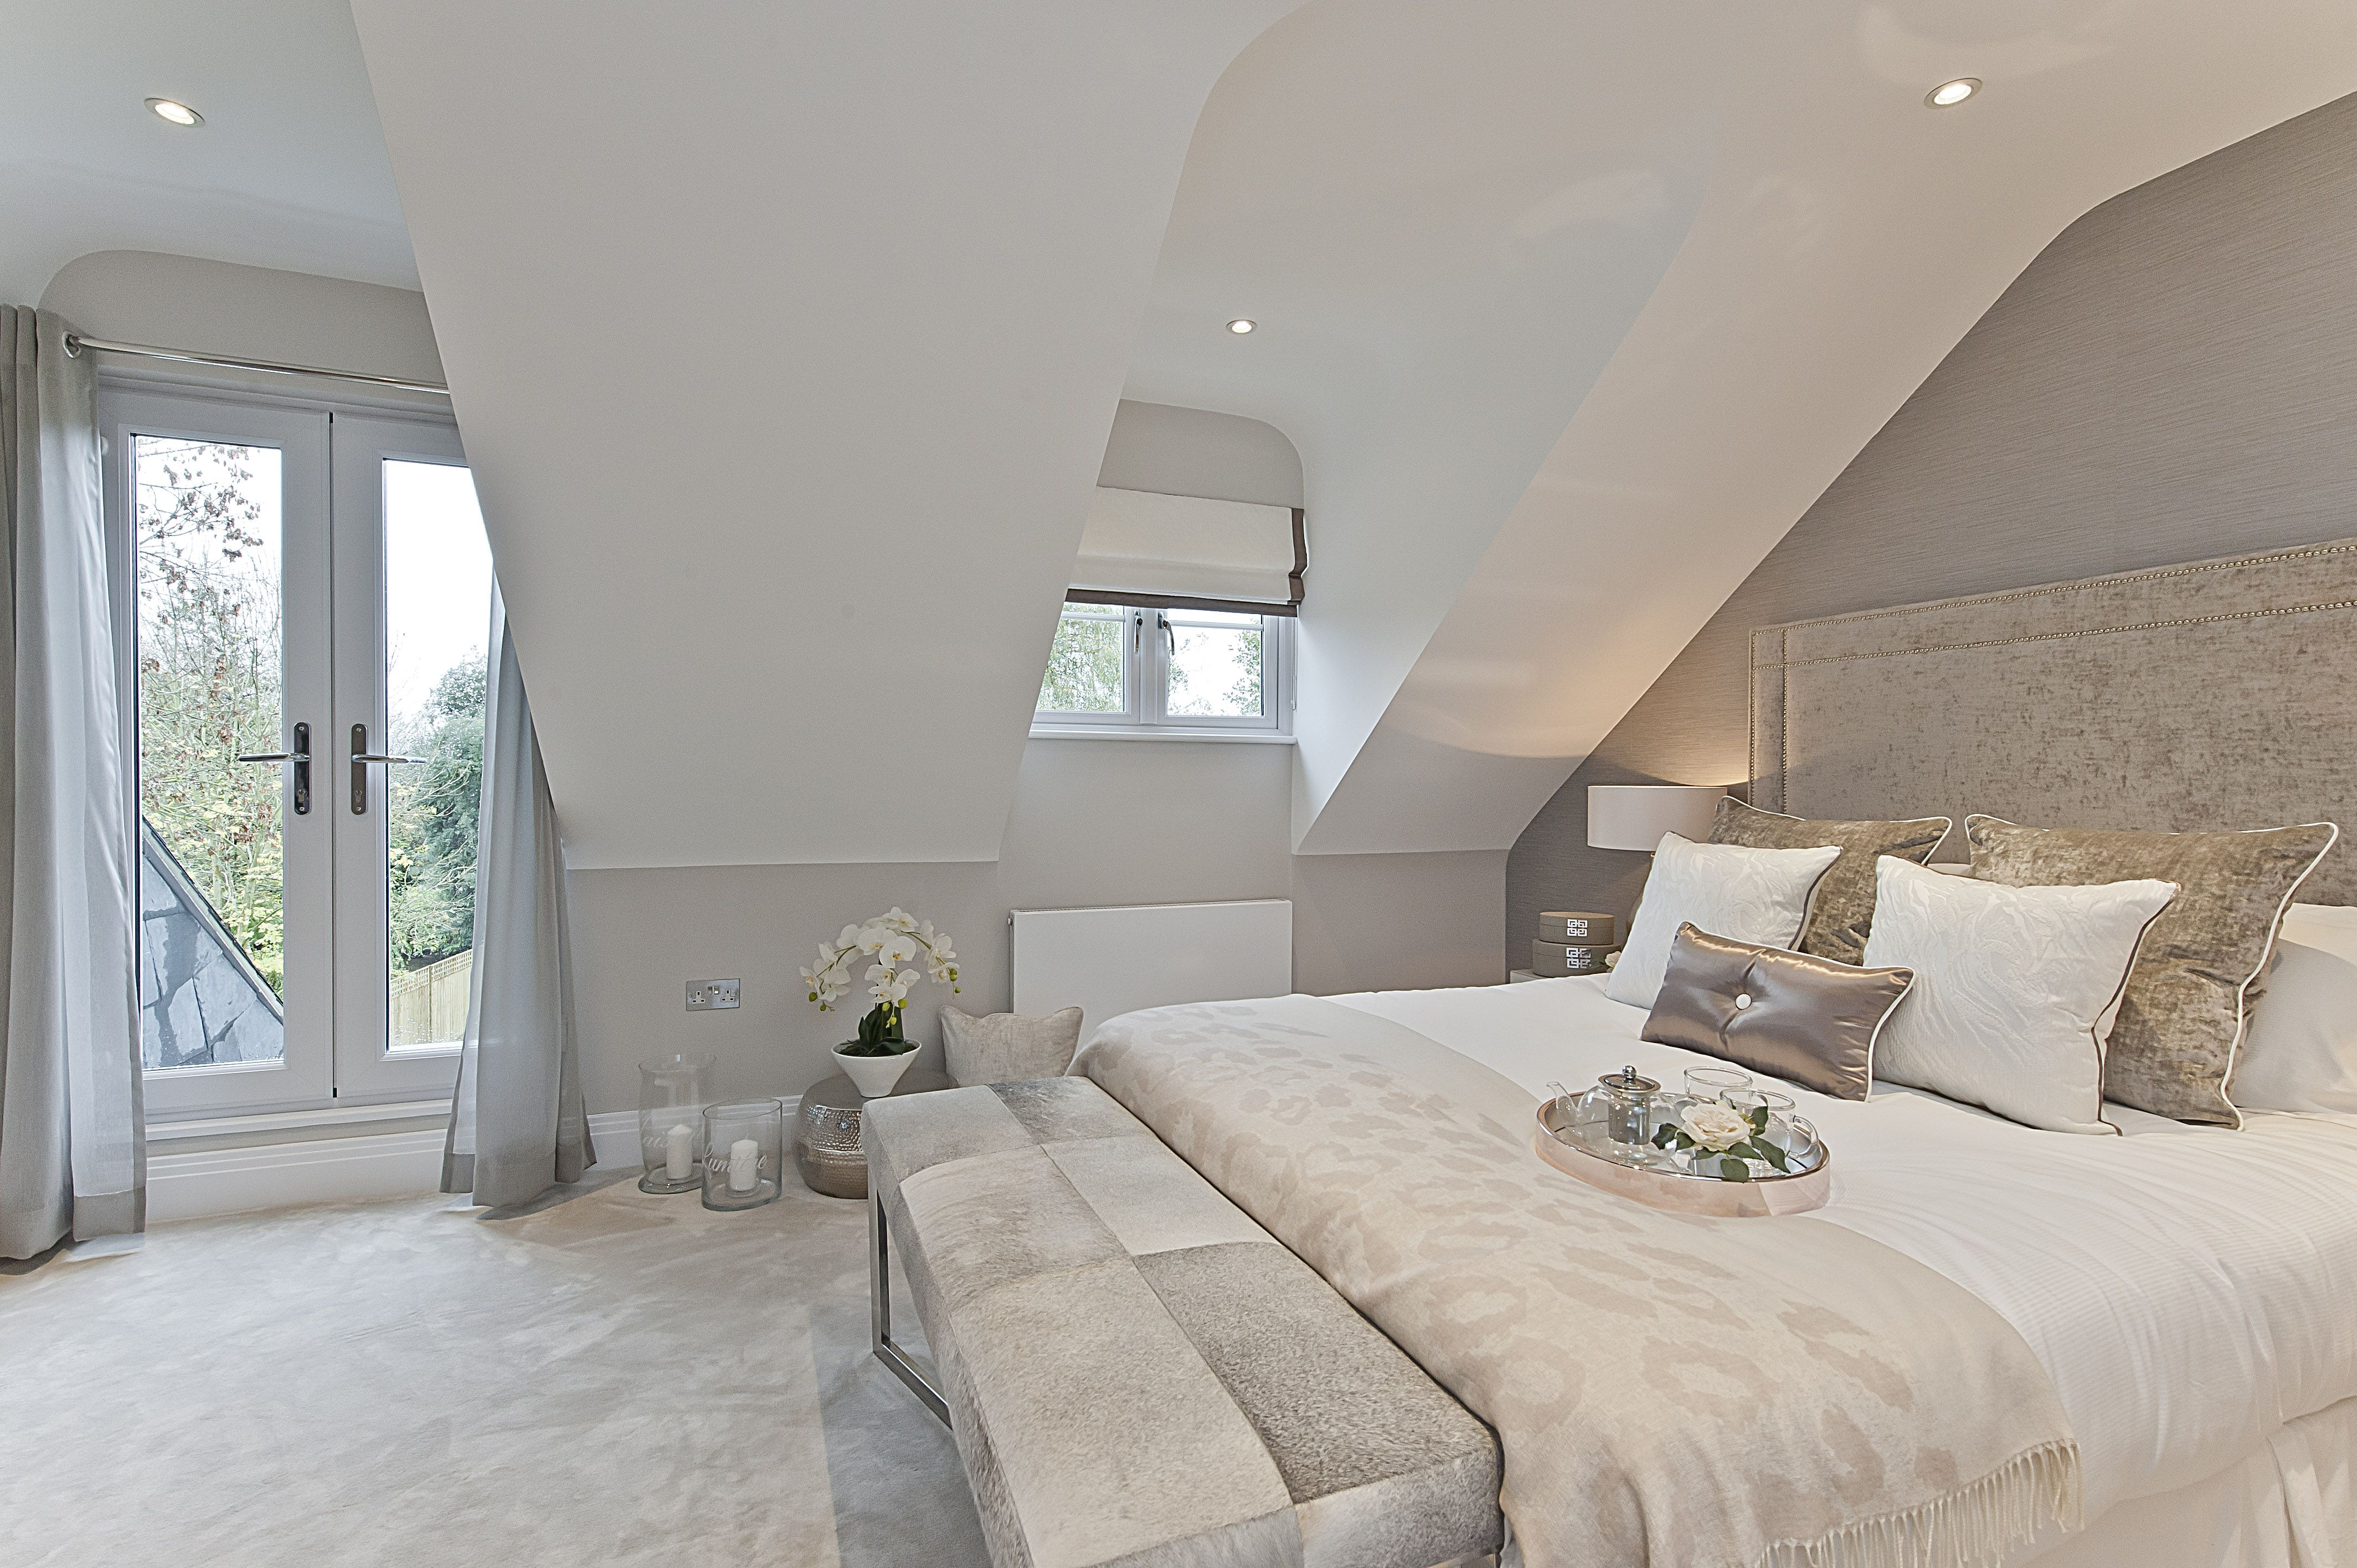 Bedroom ideas for loft rooms  Plush carpets with gold trimmings  BEDROOM IDEAS in